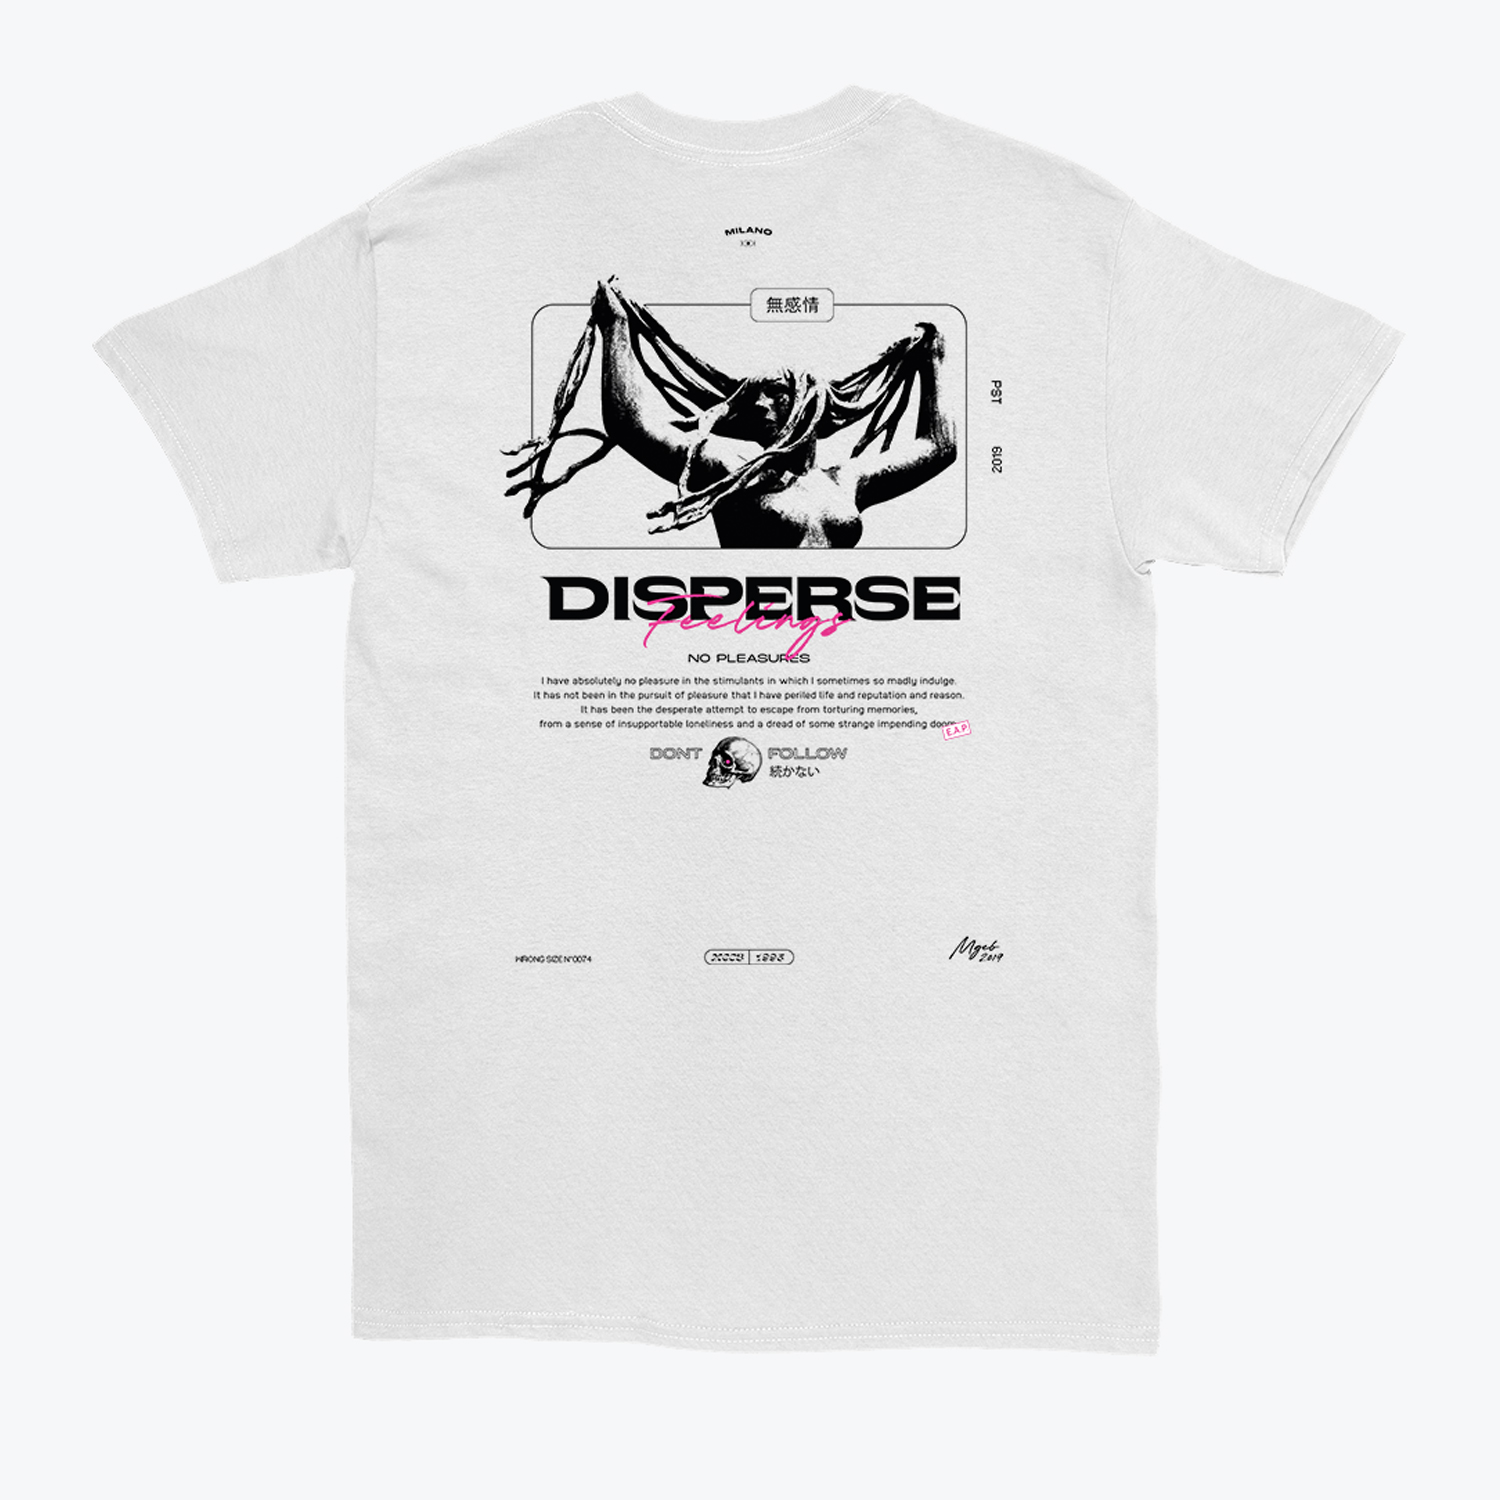 Marco Giacobbe's 'Disperse' T-shirt